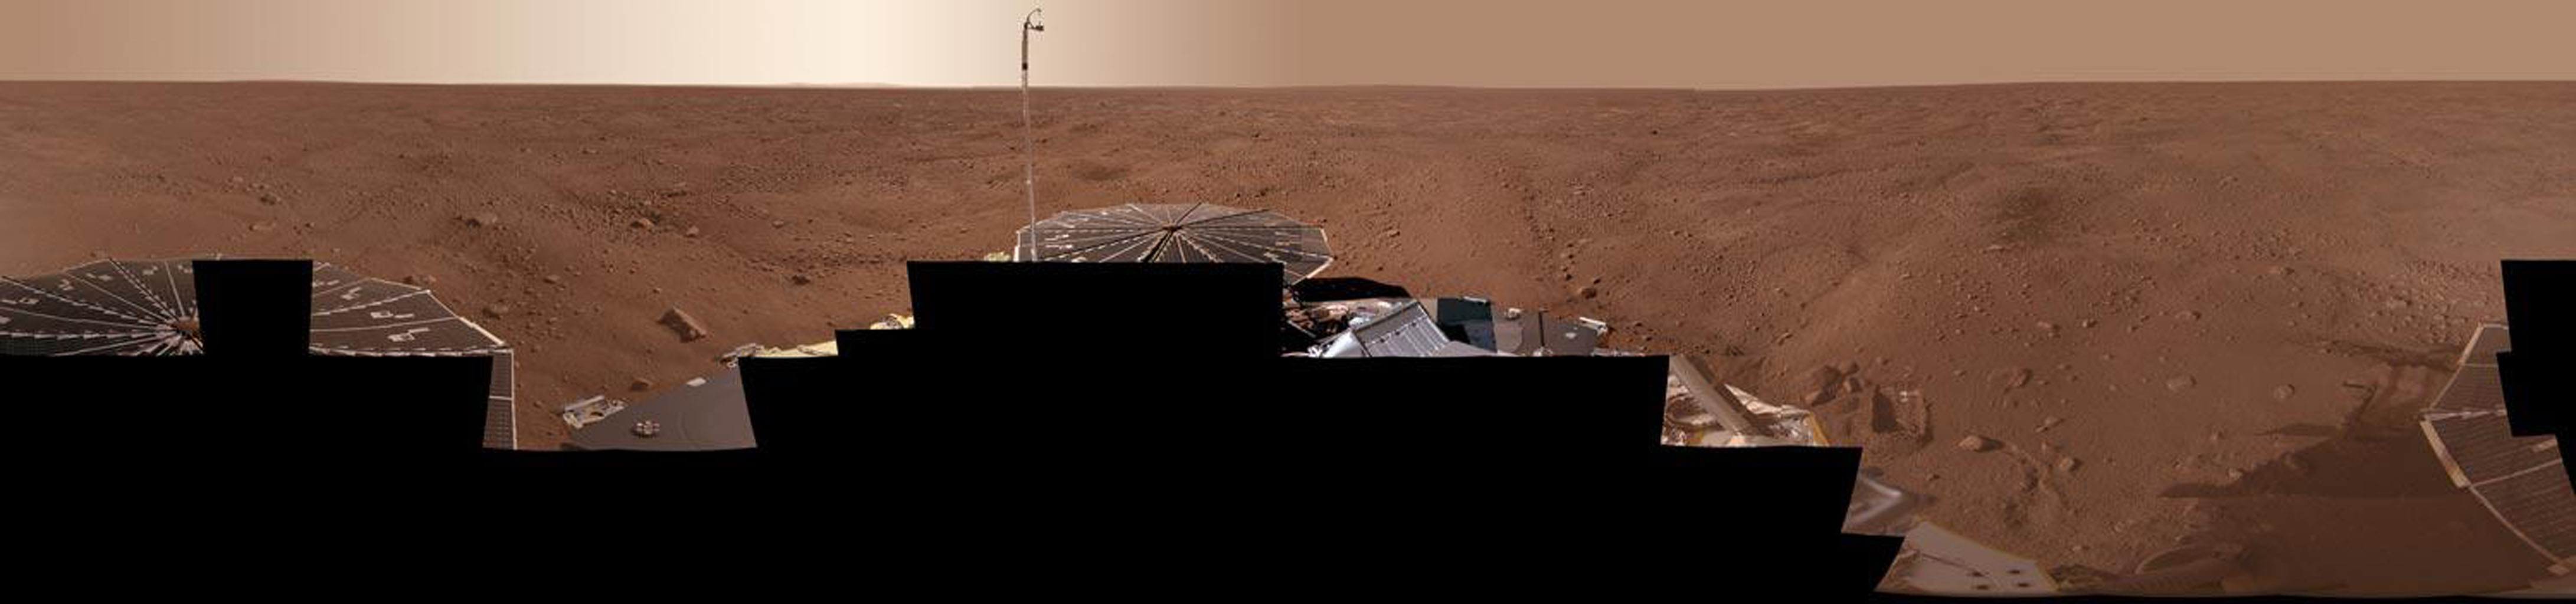 The full-circle panorama in approximately true color taken by NASA's Phoenix Mars Lander shows the polygonal patterning of ground at the landing area, similar to patterns in permafrost areas on Earth.